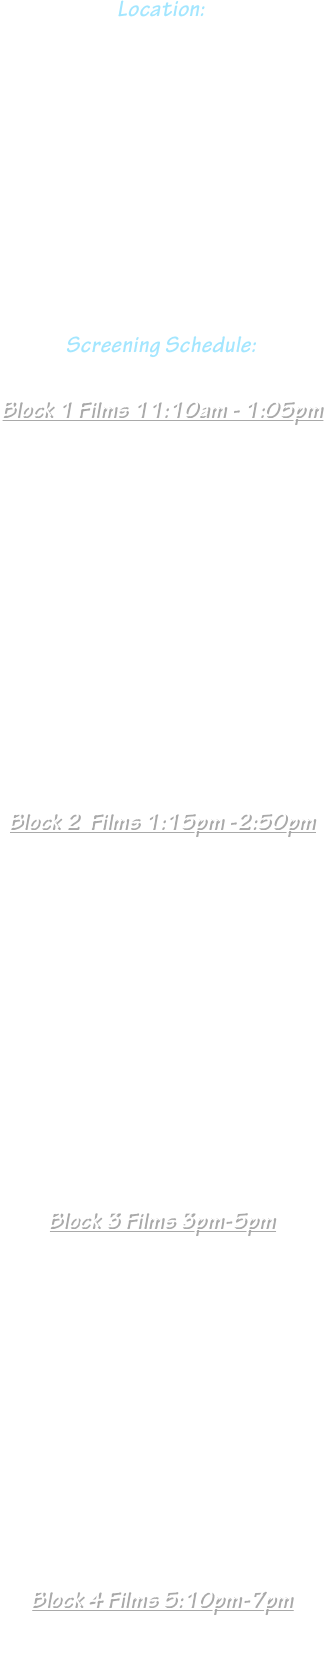 Location: 